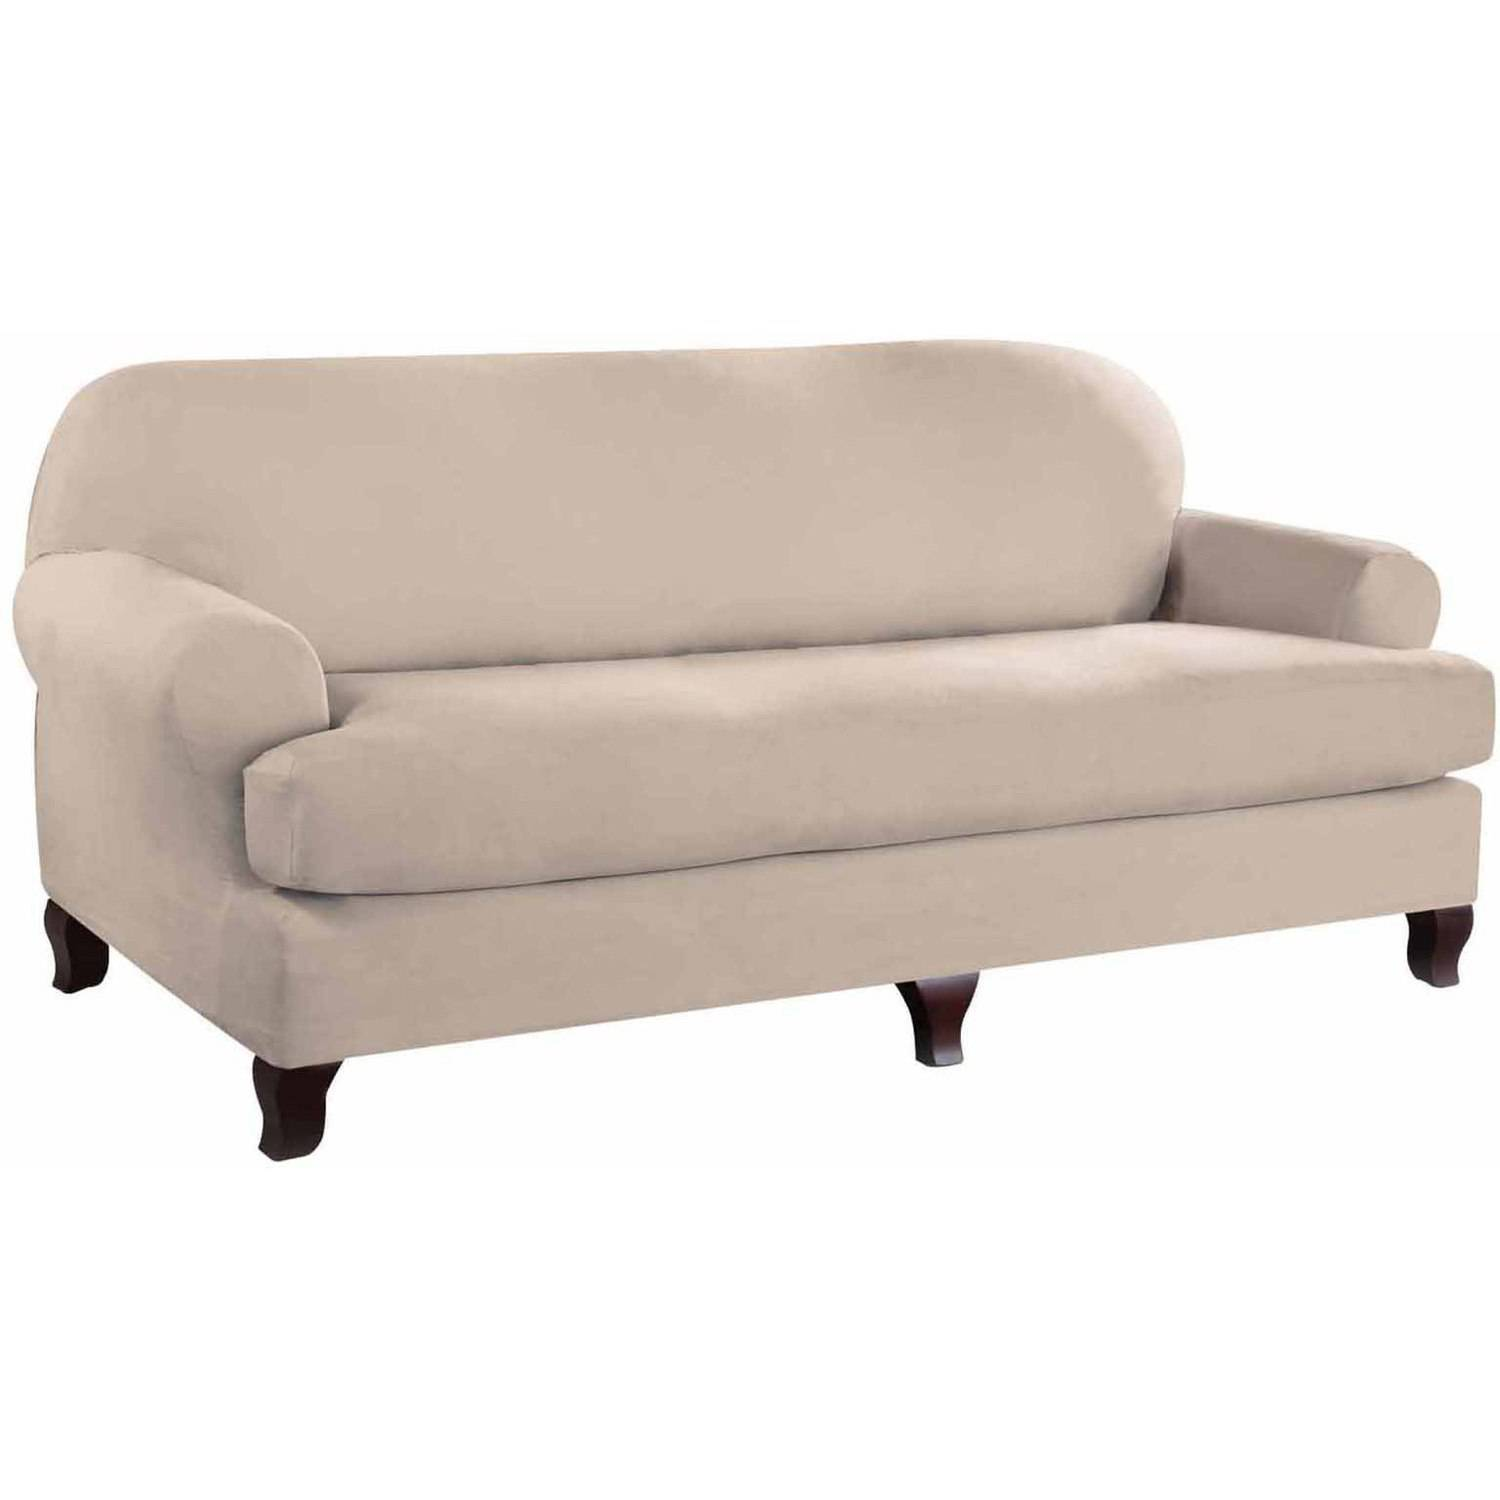 Better Homes and Gardens Stretch Suede Sofa Slipcover Walmart